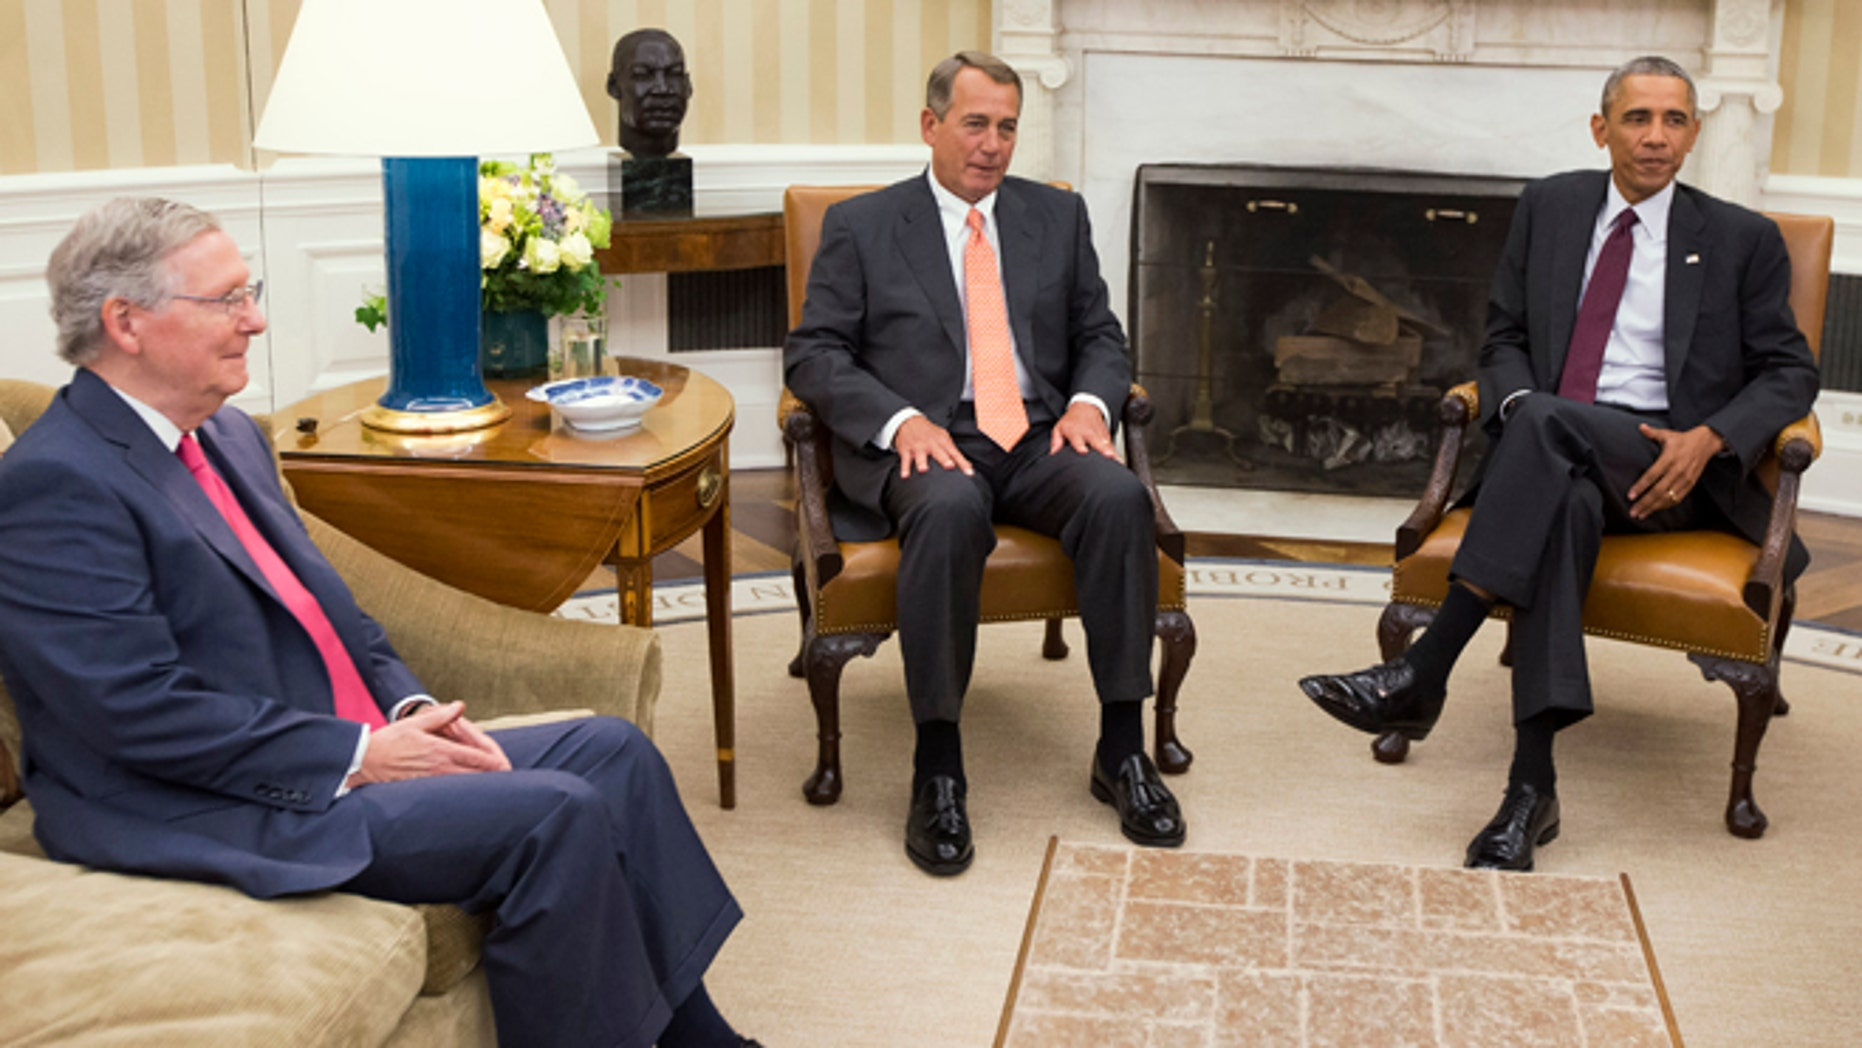 FILE - In this Sept. 9, 2014 file photo, President Barack Obama meets with Senate Minority Leader Mitch McConnell of Ky., left, and House Speaker John Boehner of Ohio in the Oval Office of the White House in Washington. The new Congress convenes Tuesday with Republicans in control of the House and the Senate as a formidable counterpoint to President Barack Obama in his final two years in office. Obama has the power to veto legislation, an action hes only taken twice in six years. Expect plenty more in the next 24 months in showdowns between the Democratic president and the GOP-led Congress.  (AP Photo/Evan Vucci, File)